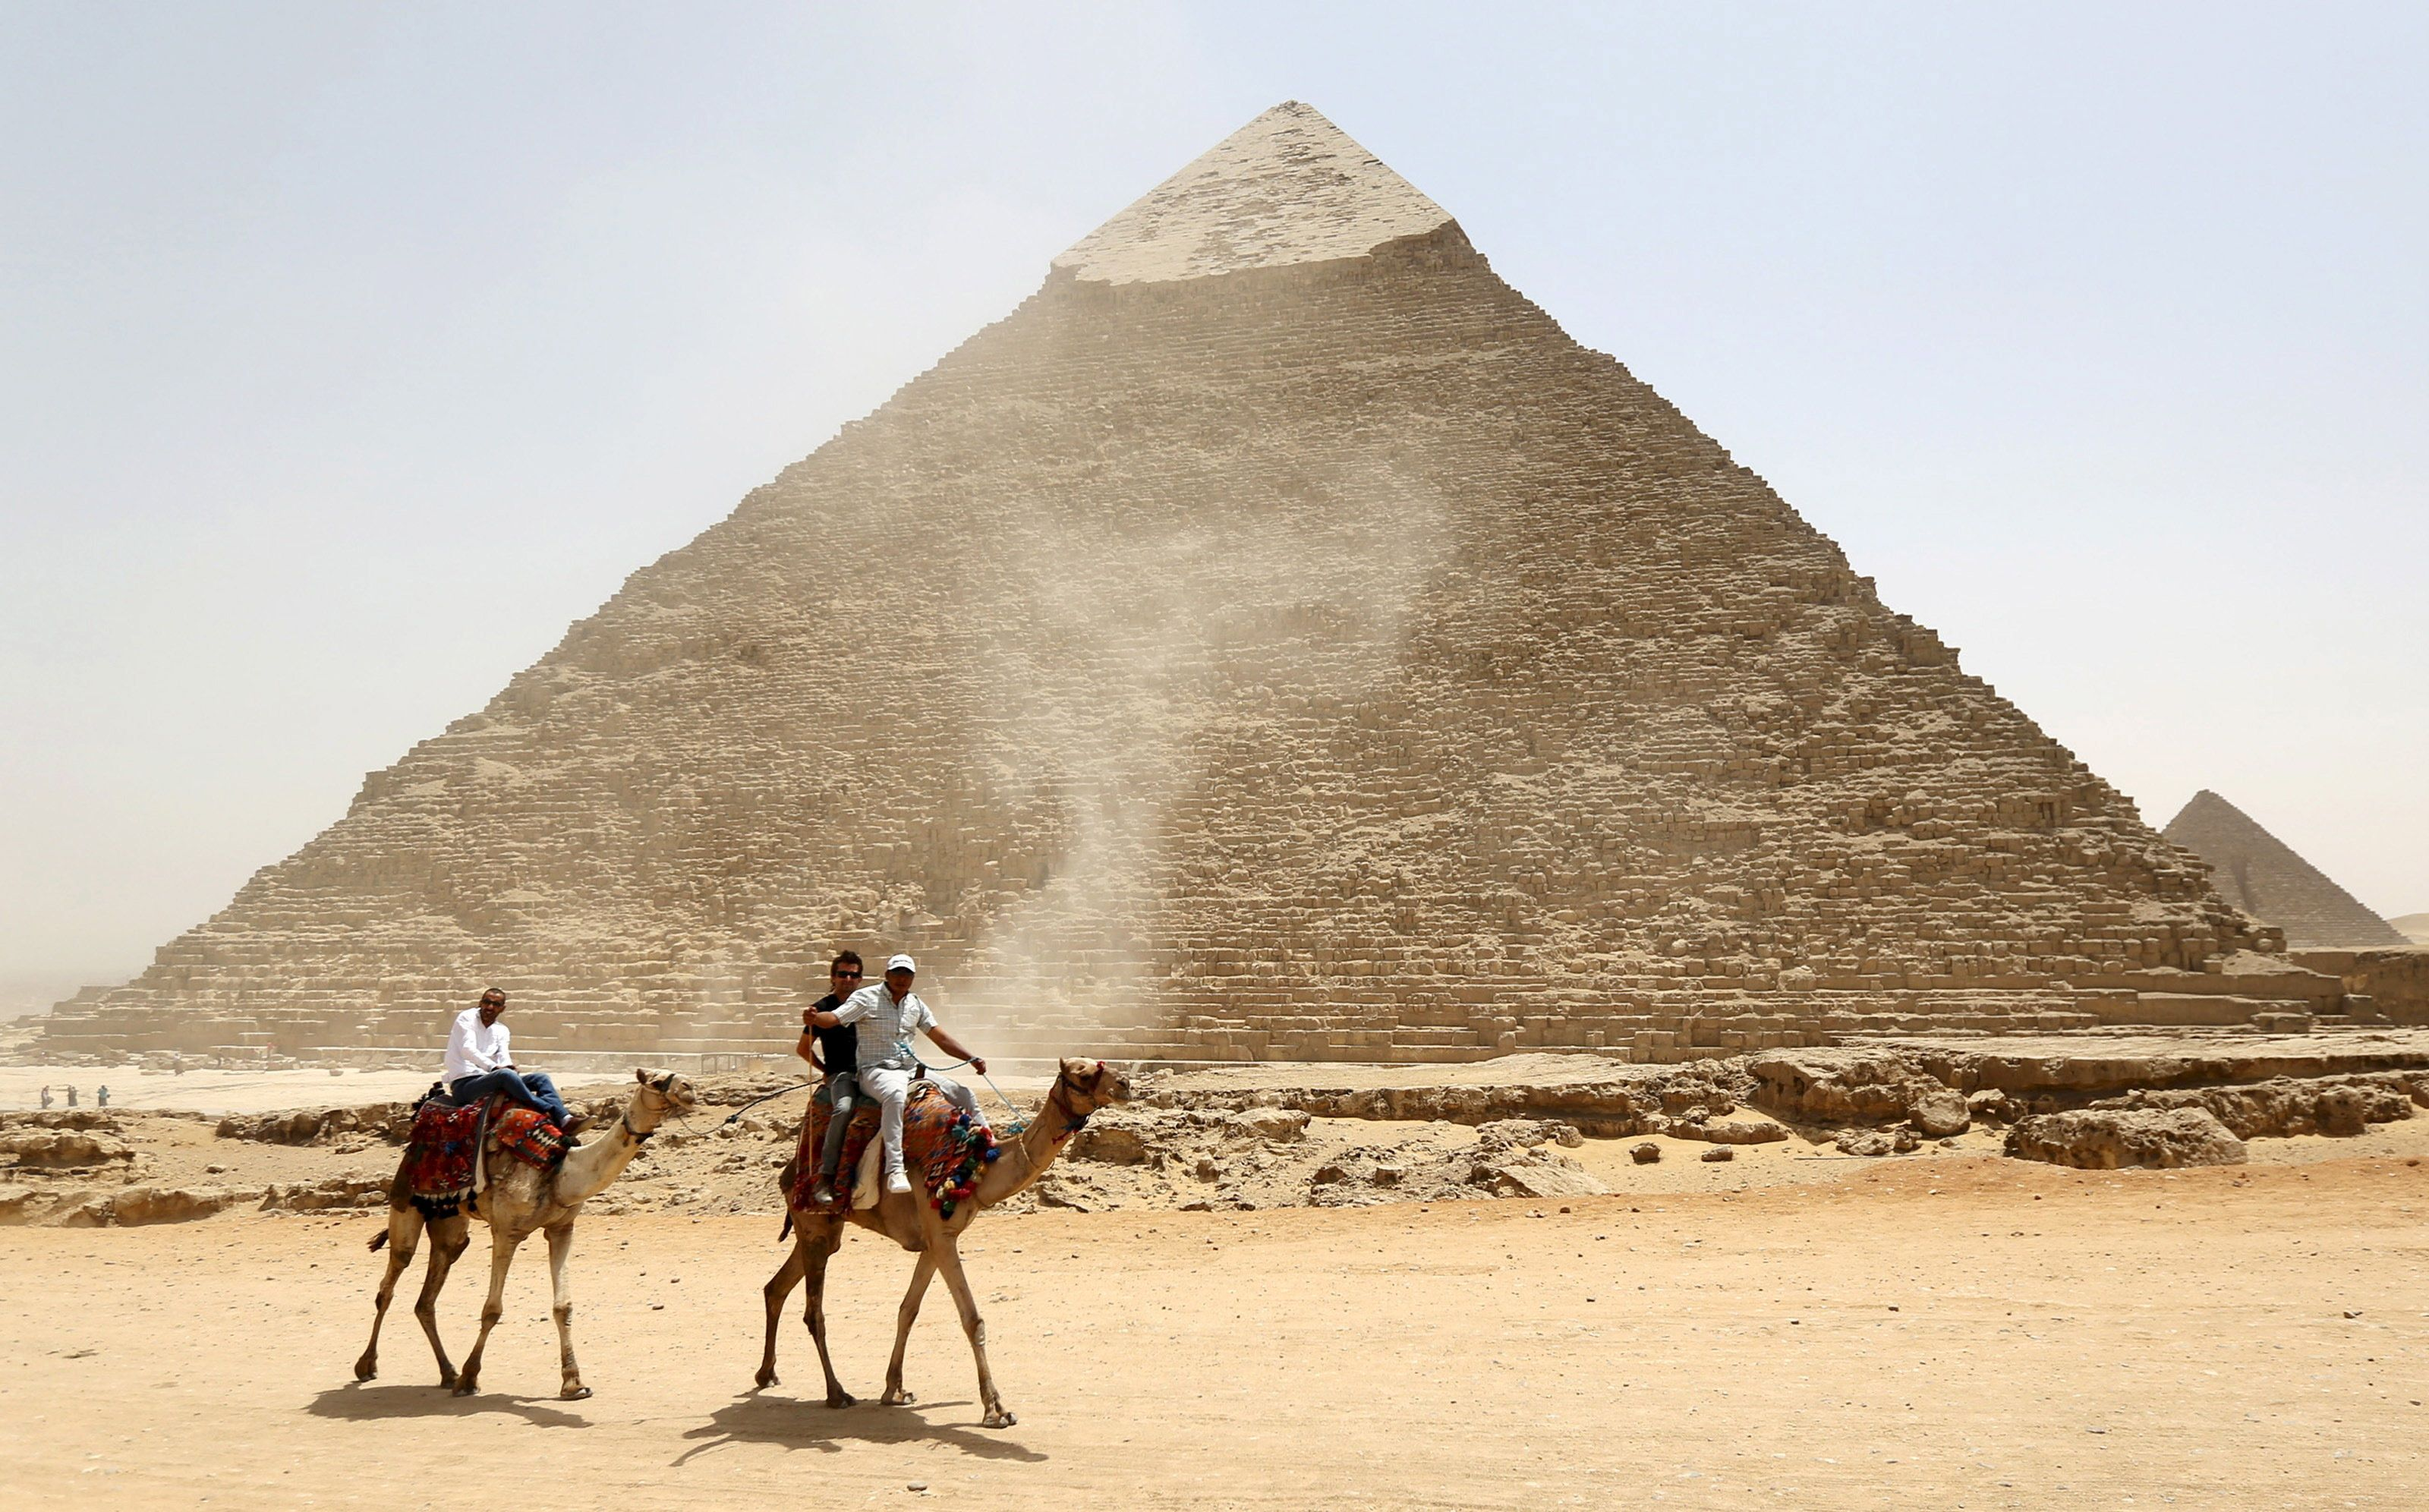 Tourists ride on camels next to the Pyramid of Khufu on the Great Pyramids of Giza, on the outskirts of Cairo, April 27, 2015. Local media reported Egypt's Minister of Antiquities Mamdouh al-Damaty attended the opening of two tombs that were under rennovation on Monday. One tomb belongs to the Priest of King Khufu while the other belongs to his eldest son. REUTERS/Mohamed Abd El Ghany